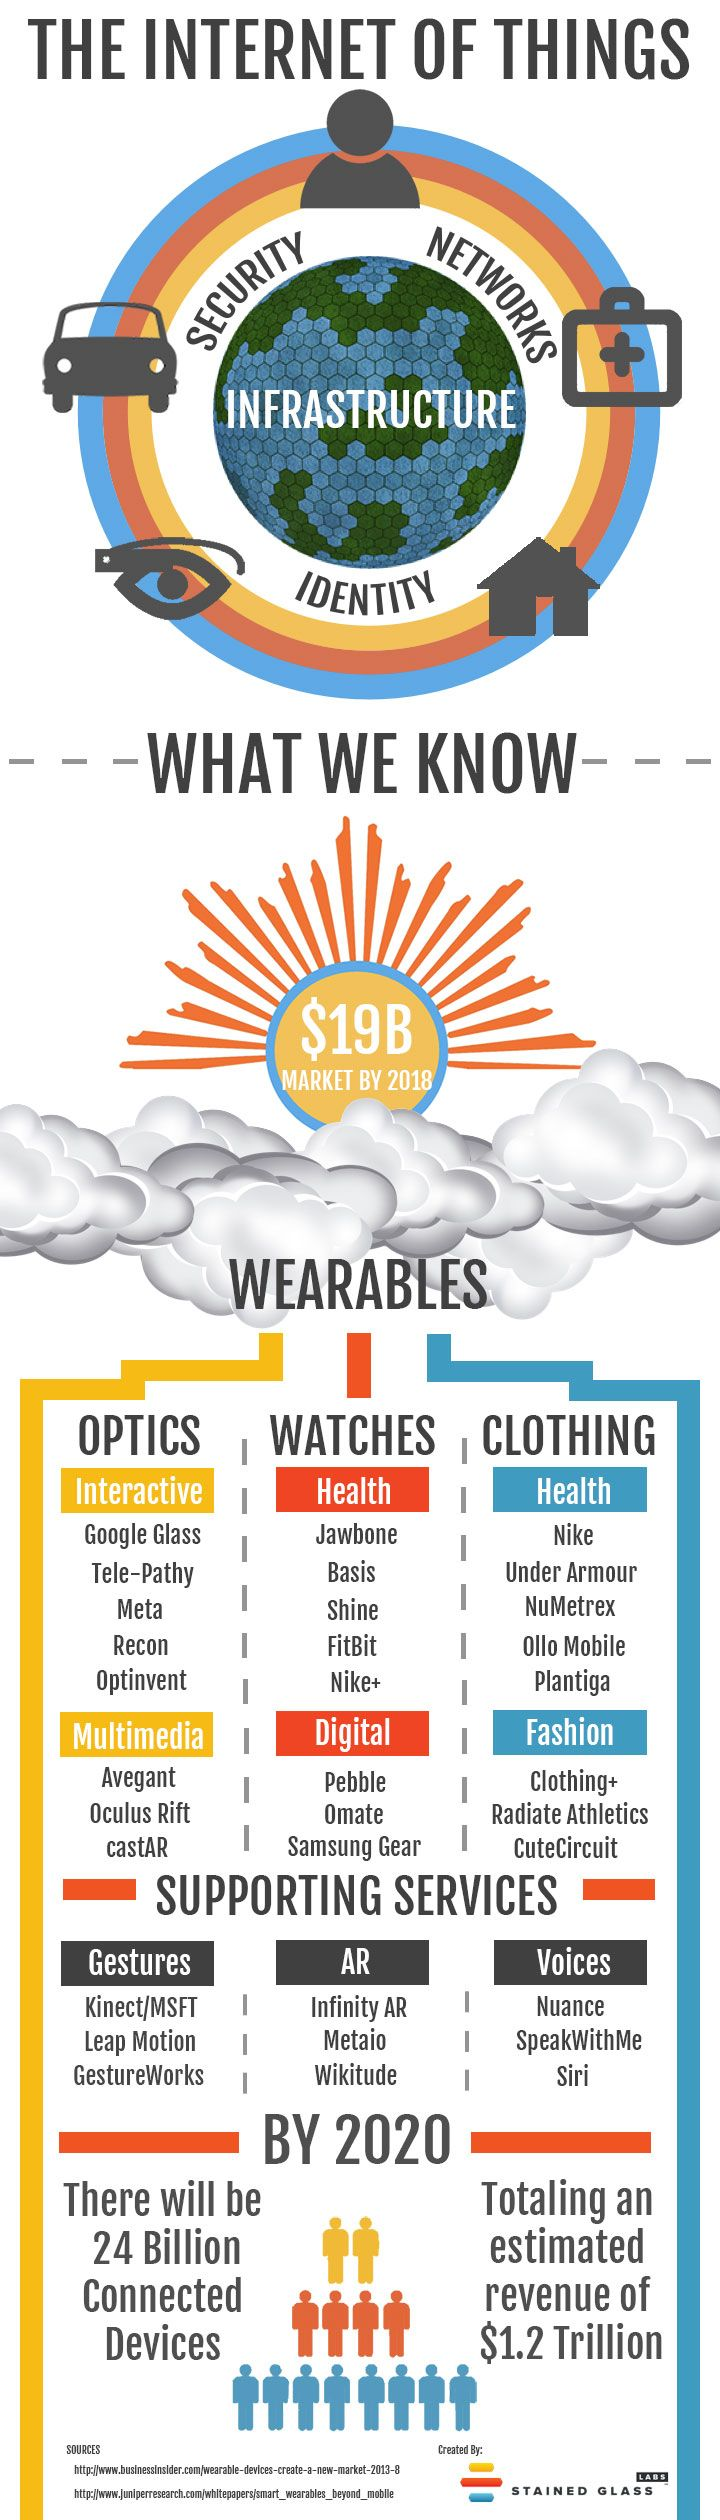 Internet of Things infographic offers some clues on trends in healthcare [Wearable Electronics: http://futuristicnews.com/tag/wearable/ Internet of the Future: http://futuristicnews.com/tag/internet/ Smart Watches: http://futuristicshop.com/category/smart-watches-wearable-electronics/]